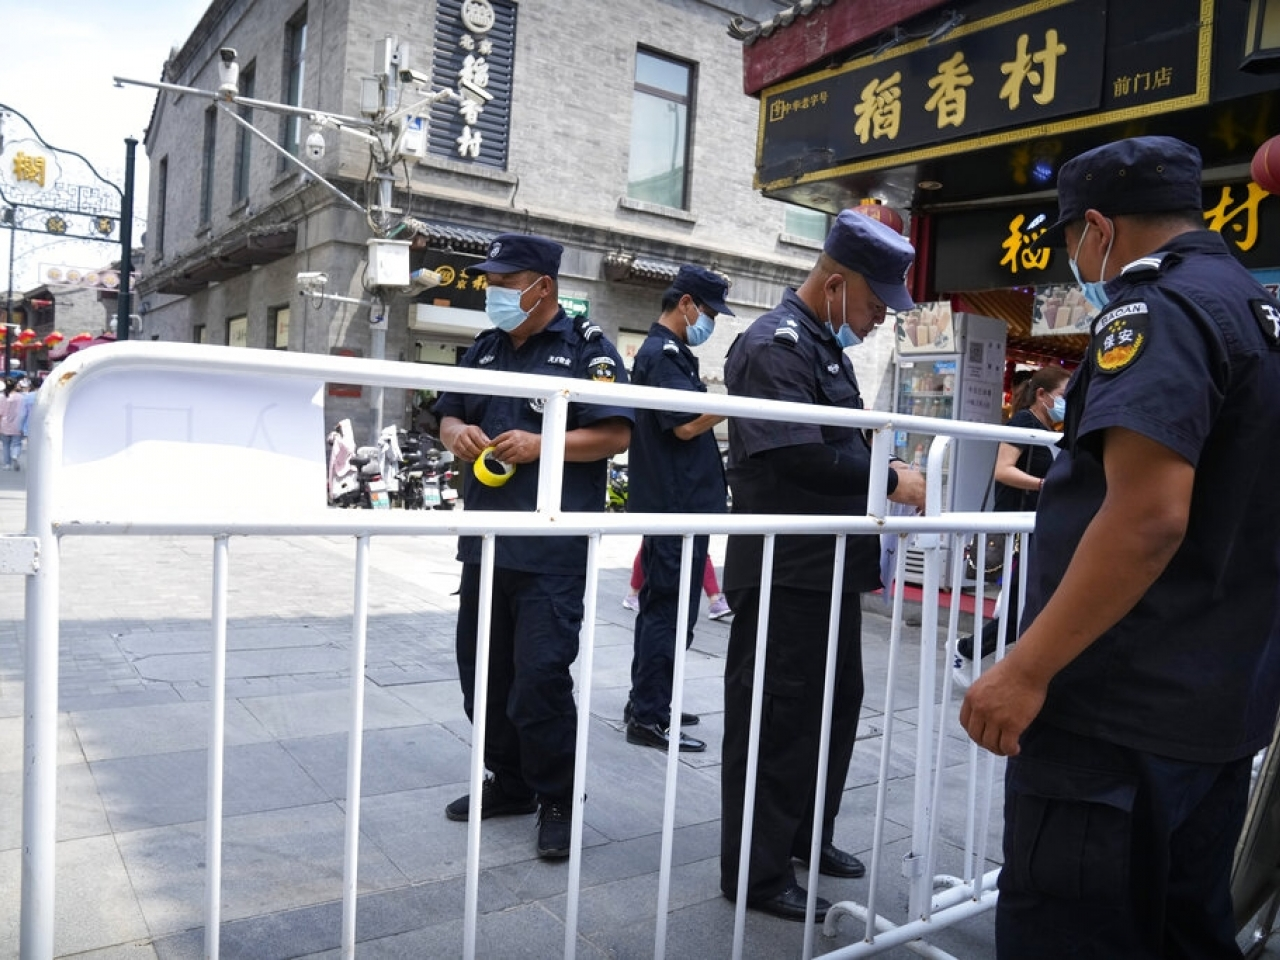 Security guards put up barriers for access control at a tourist shopping street in Beijing as the country steps up measures to prevent the spread of the virus. Photo: AP